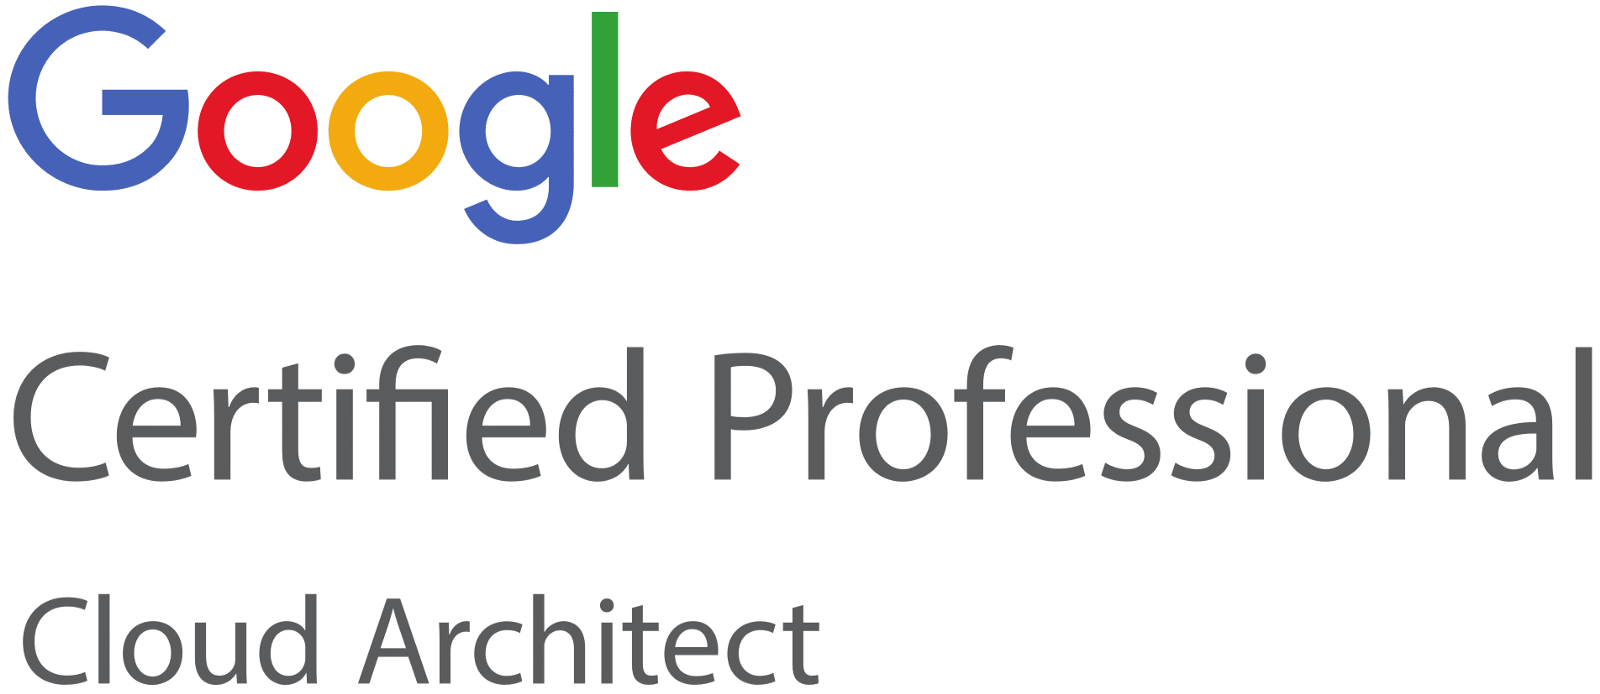 Google Certified Professional — Cloud Architect — Study Resources